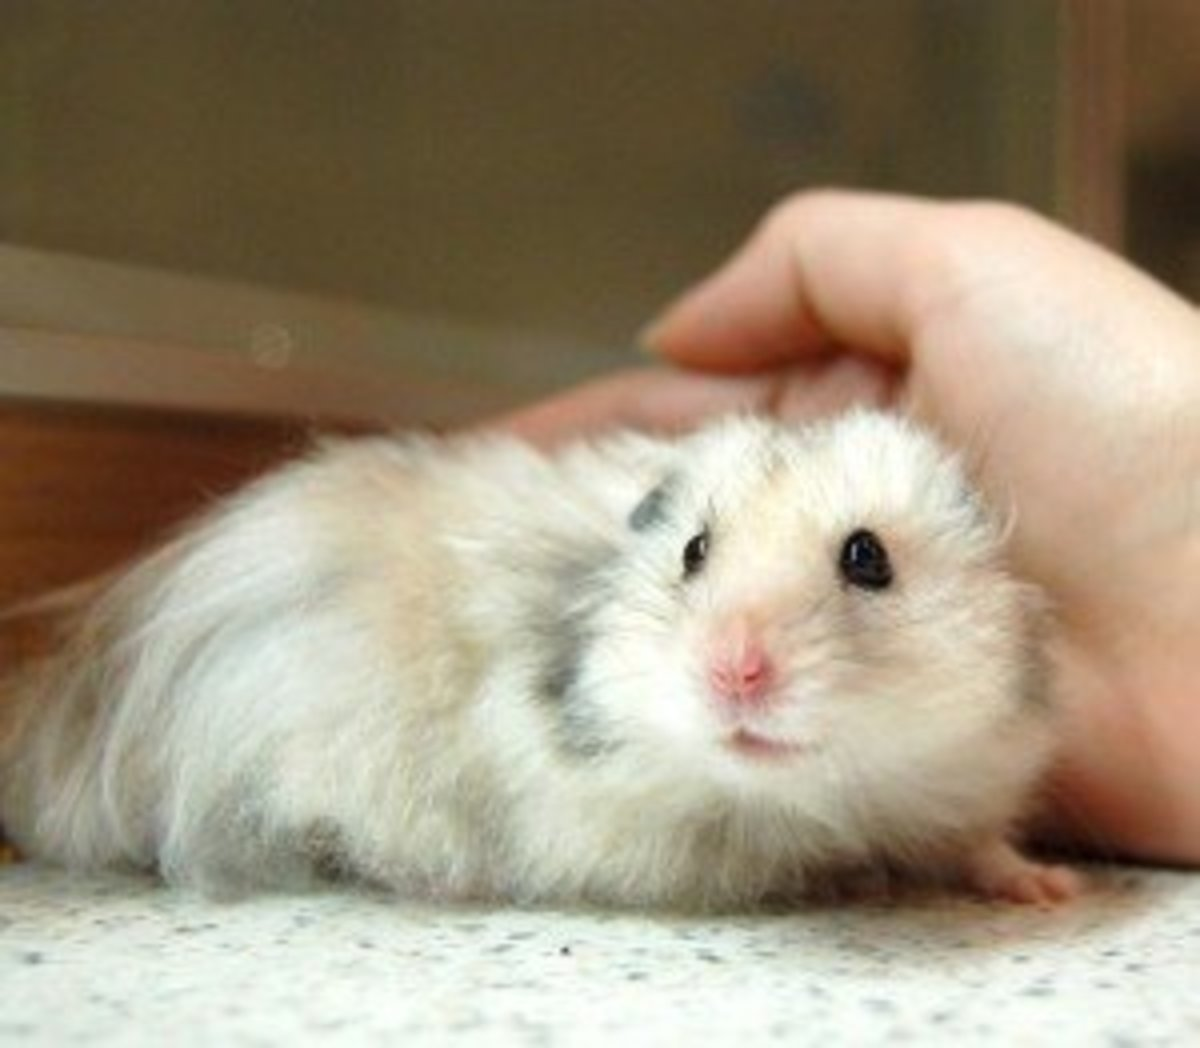 Wet Tail in Hamsters: Symptoms, Treatment, and Outlook